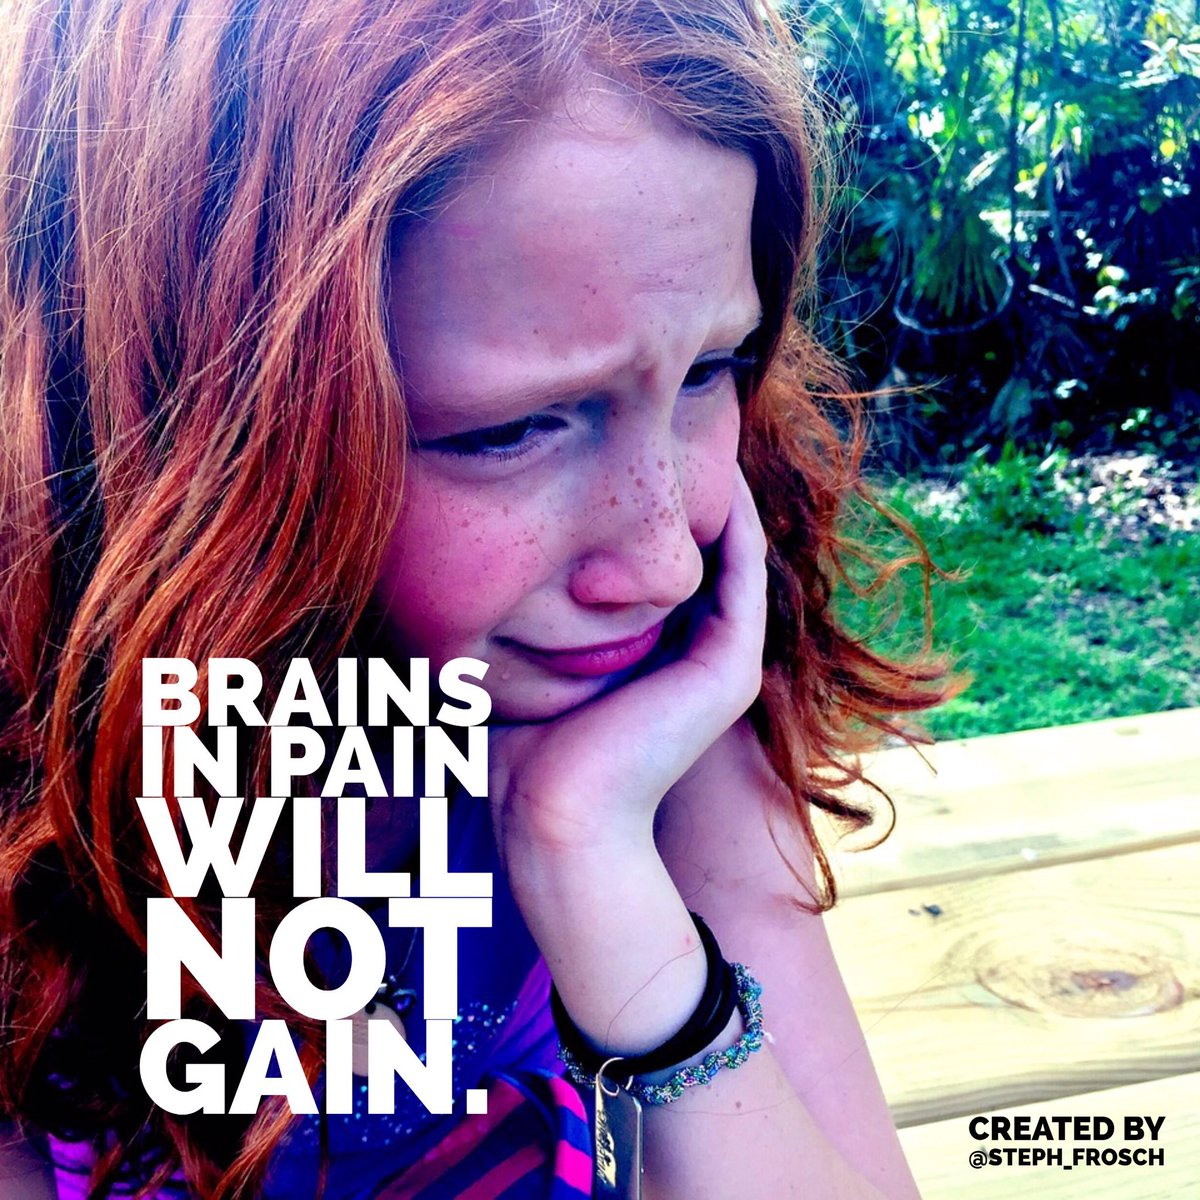 Brains In Pain Cannot Learn >> Steph Frosch On Twitter Excellent Read Brains In Pain Cannot Learn